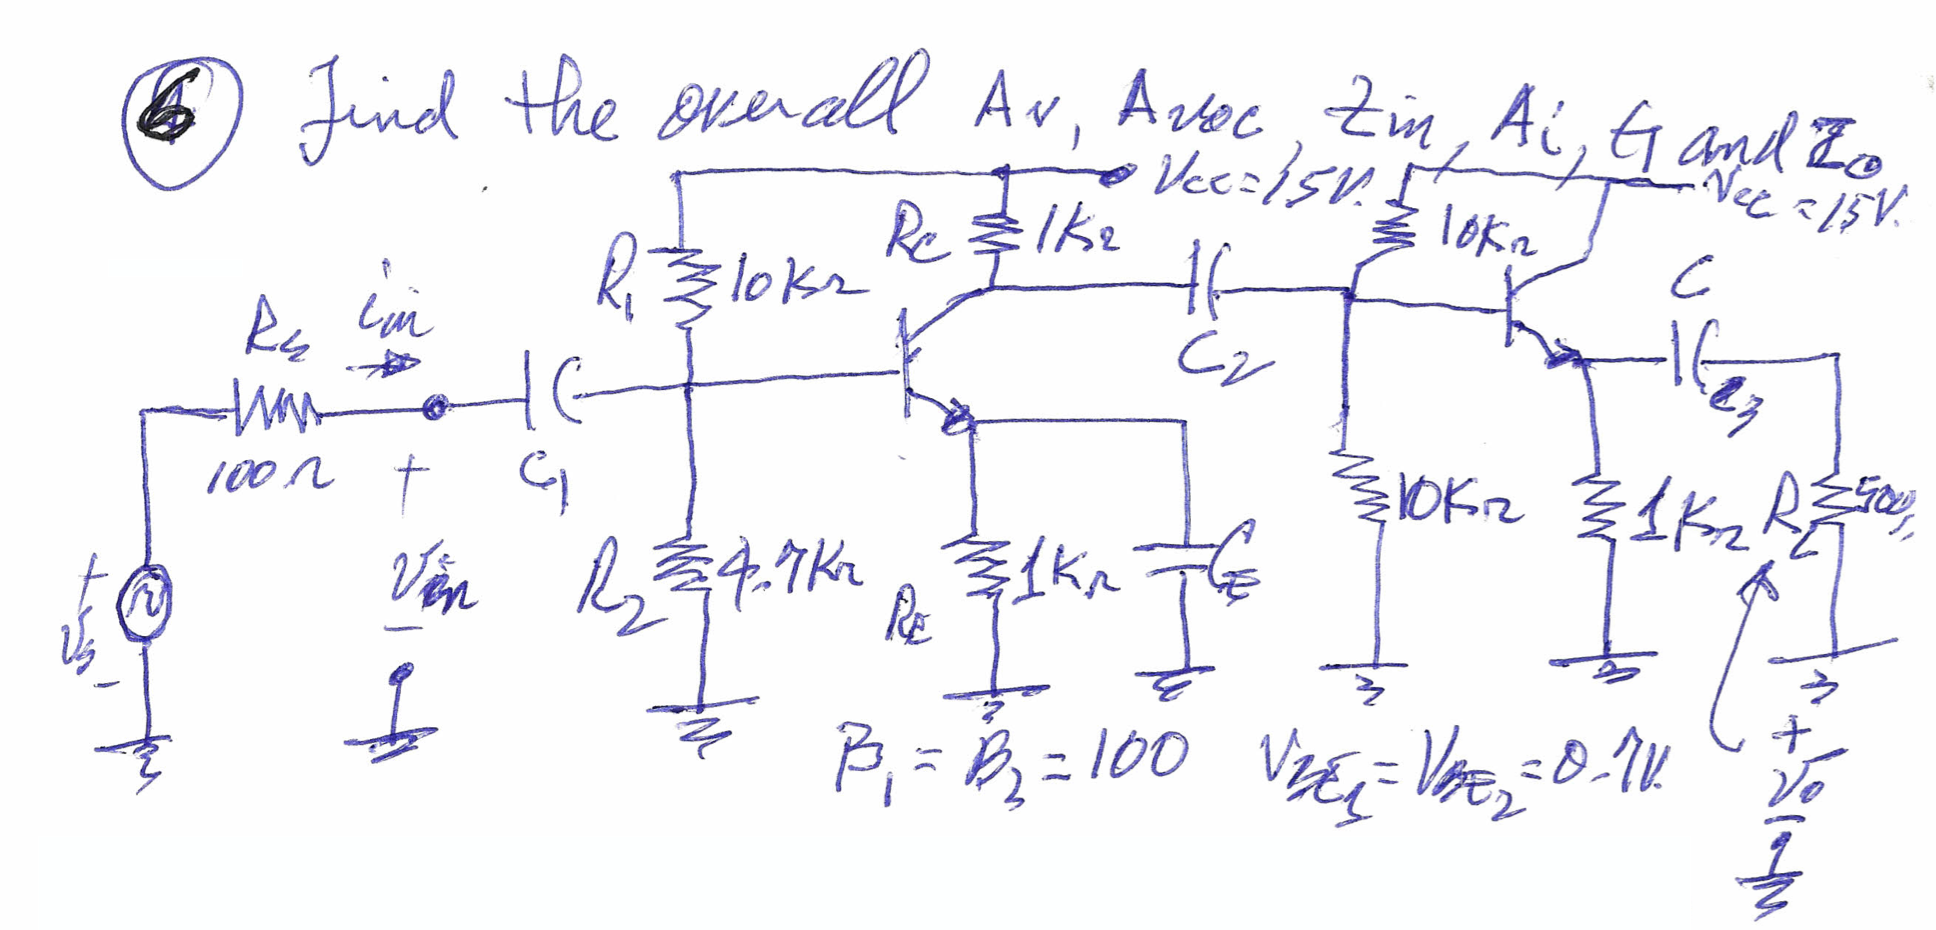 solve for the circuit